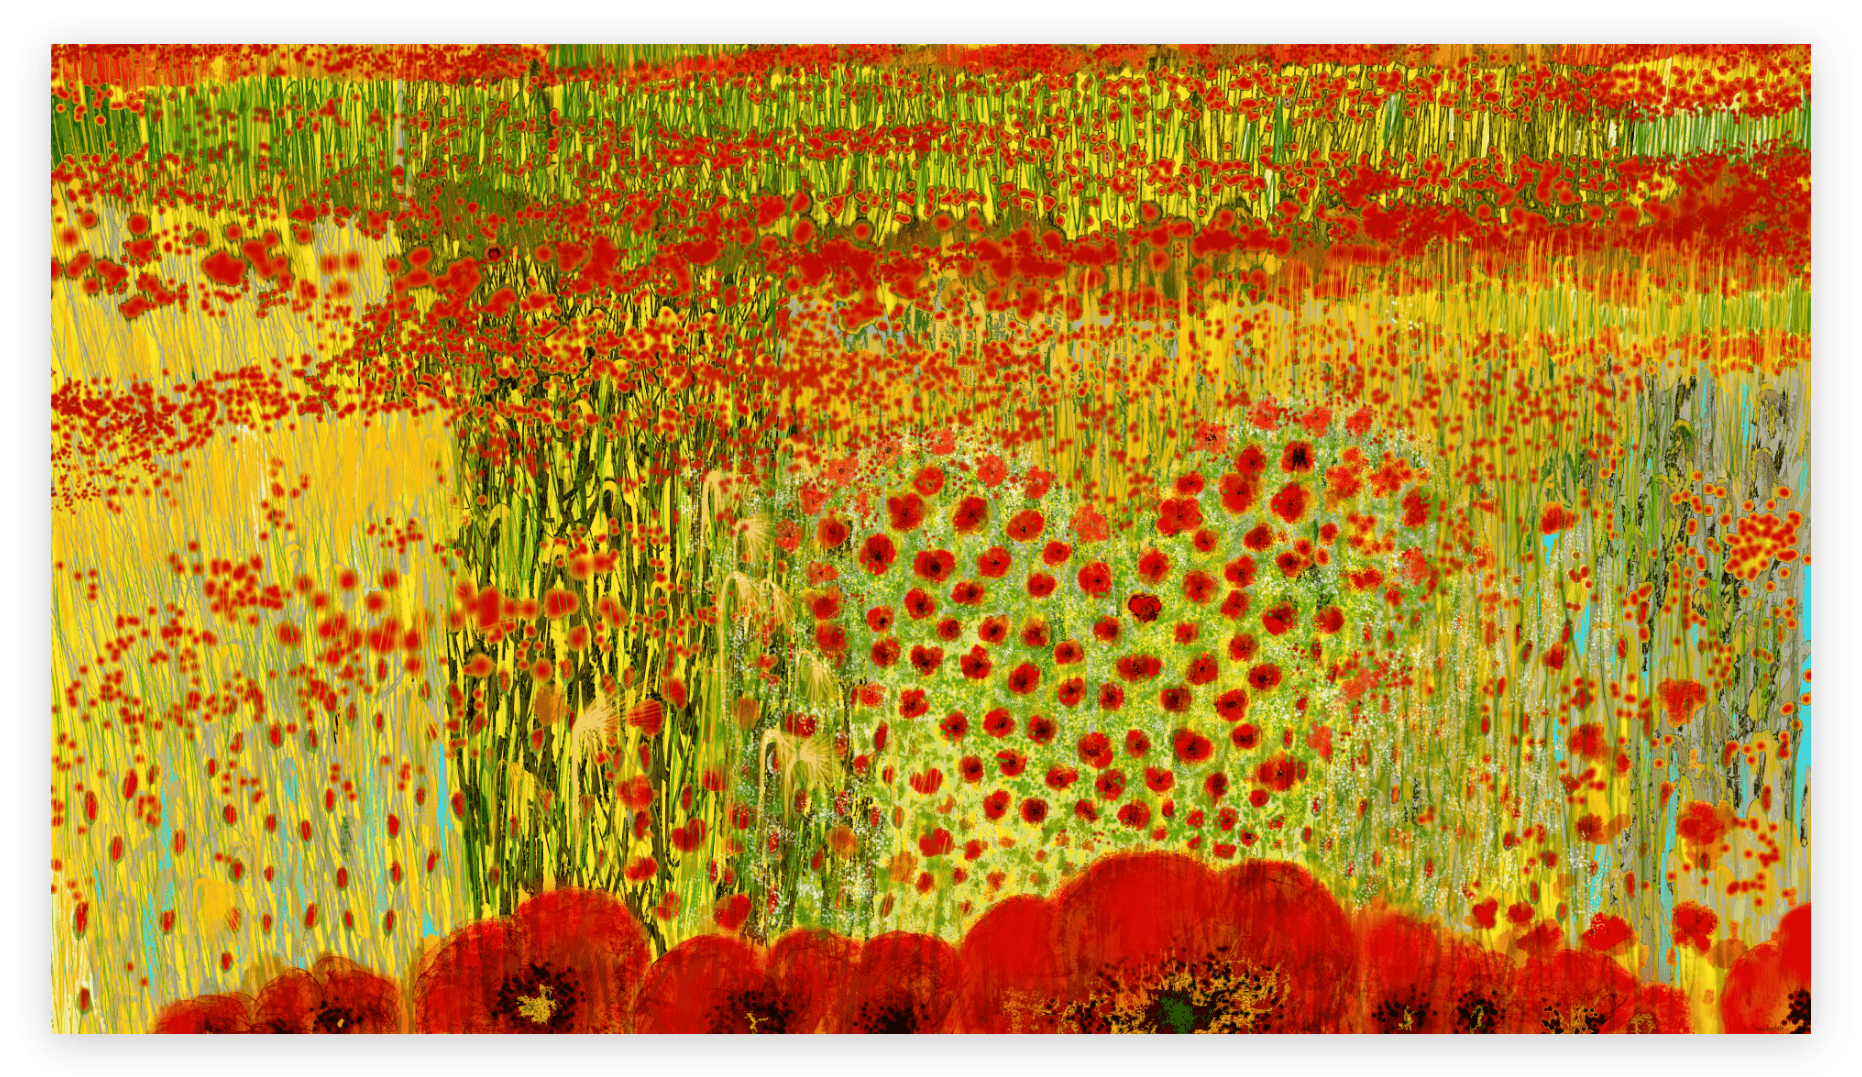 Dazzling art print inspired by the vivid poppies in Occitanie, France. artist: Anne Turlais - Limited edition of 300. Floral Art print in limited edition on Dibond.